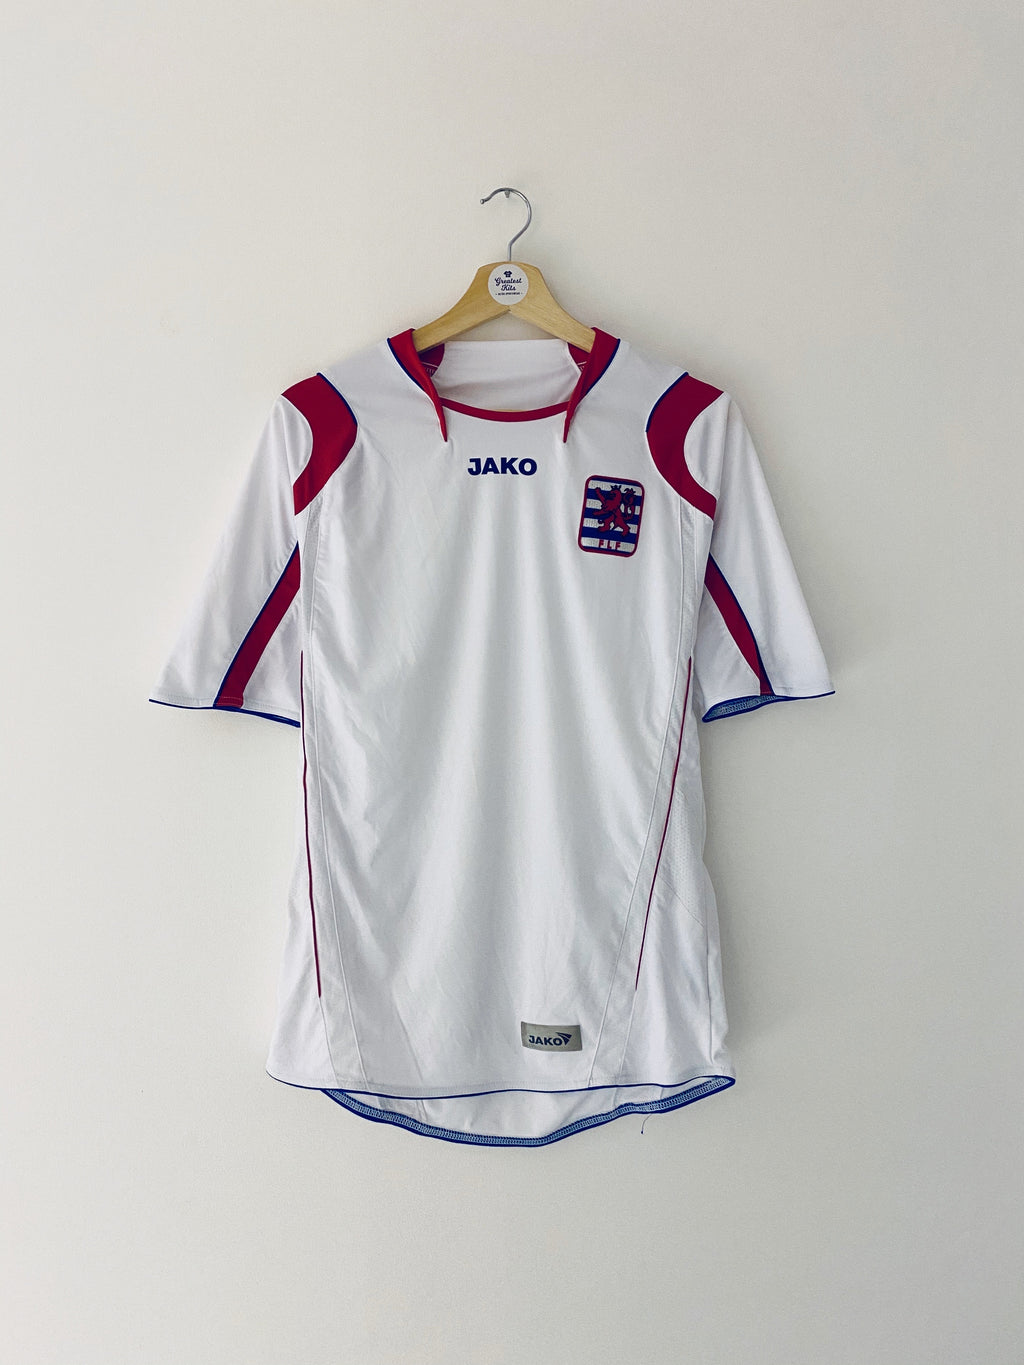 2008/09 Luxembourg Away Shirt (S) 9/10